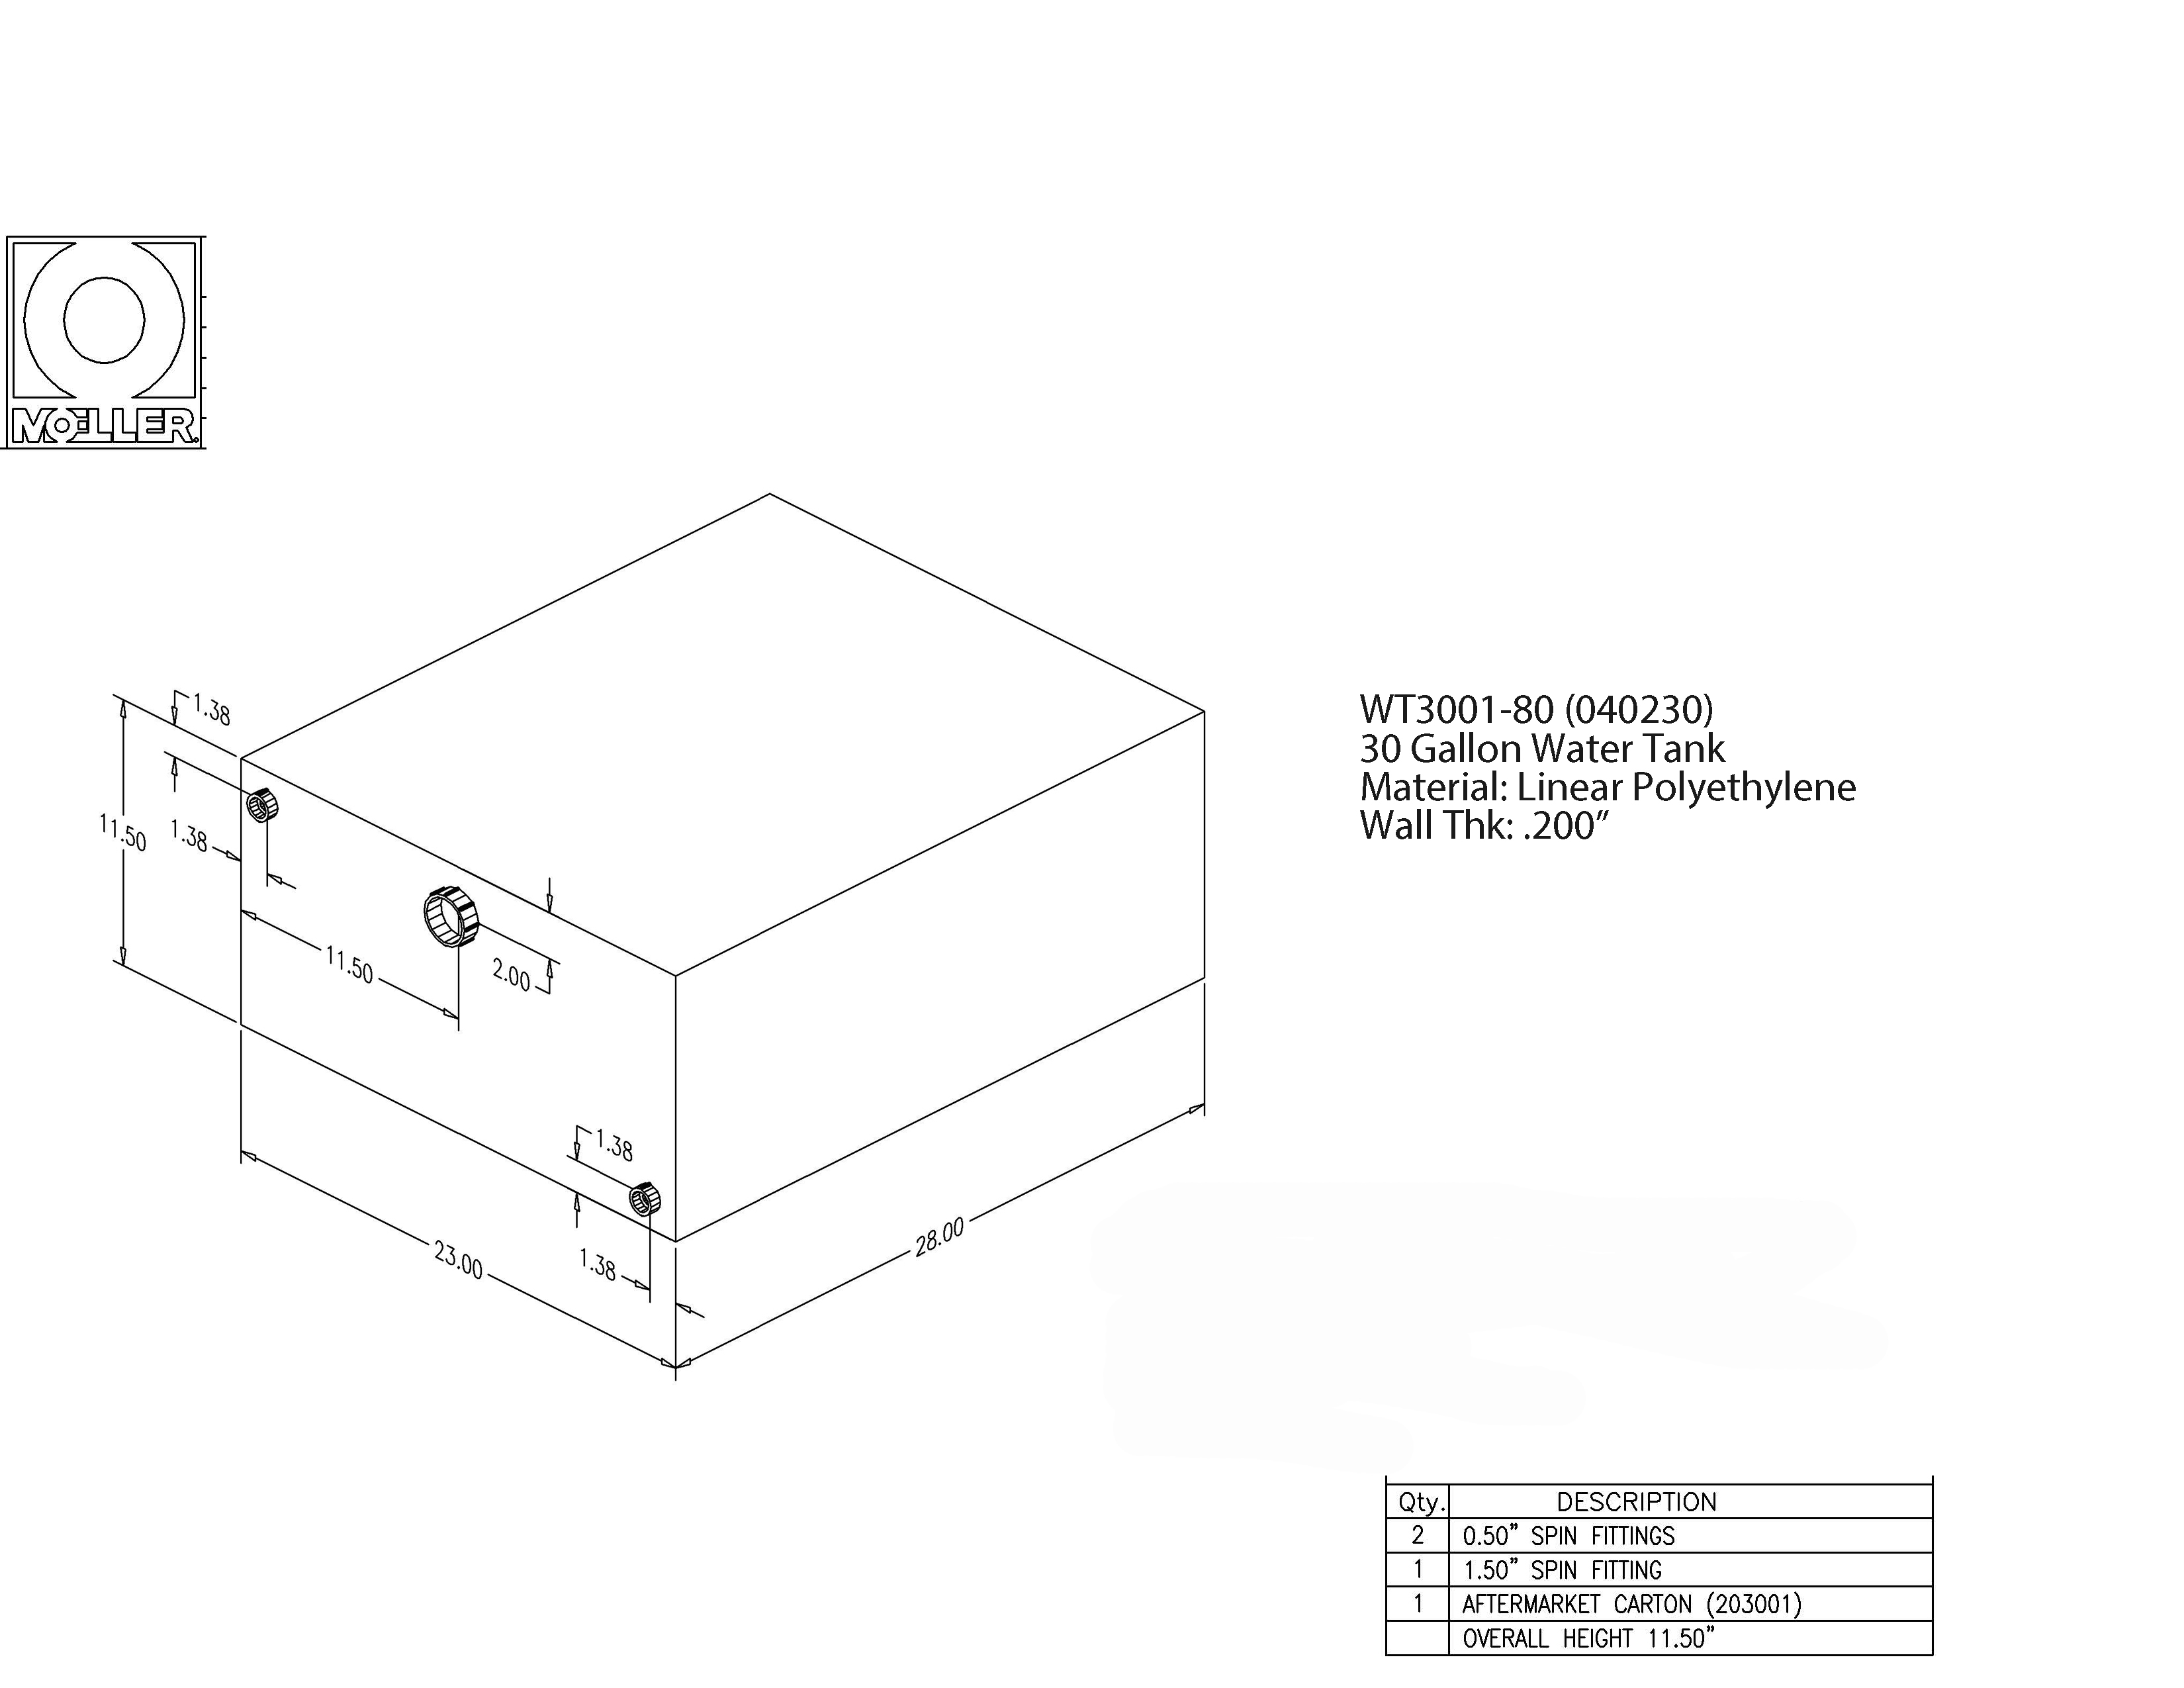 30 Gallon Rectangular Shaped Waste/Water Tank, 28″x23″x11.5″, WT3001-80 (040230)